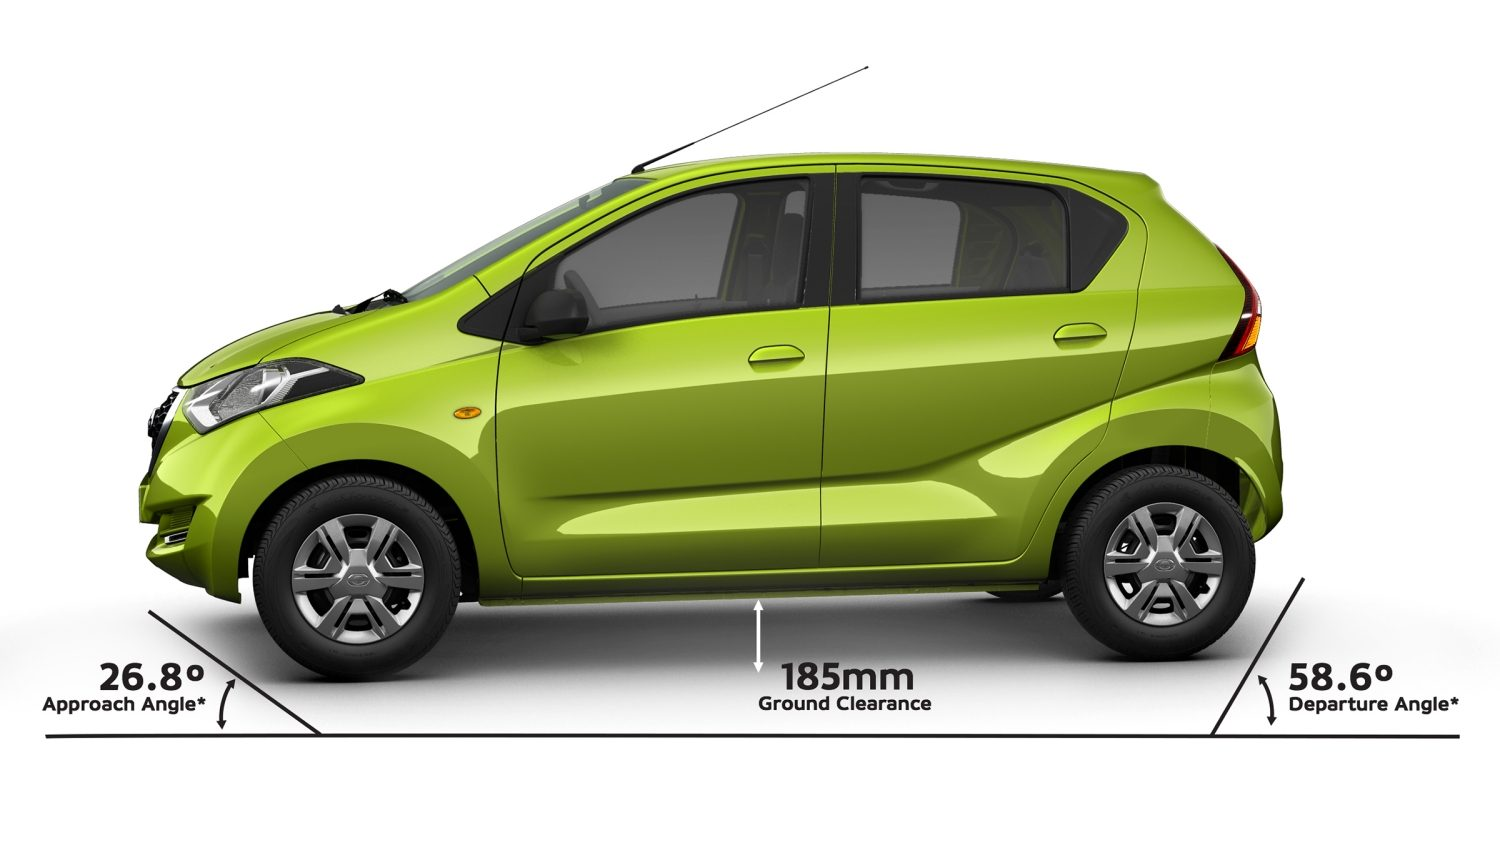 Datsun Redi Go Performance Fuel Economy 2011 Smart Car Wiring Diagram Exterior Profile High Ground Clearance